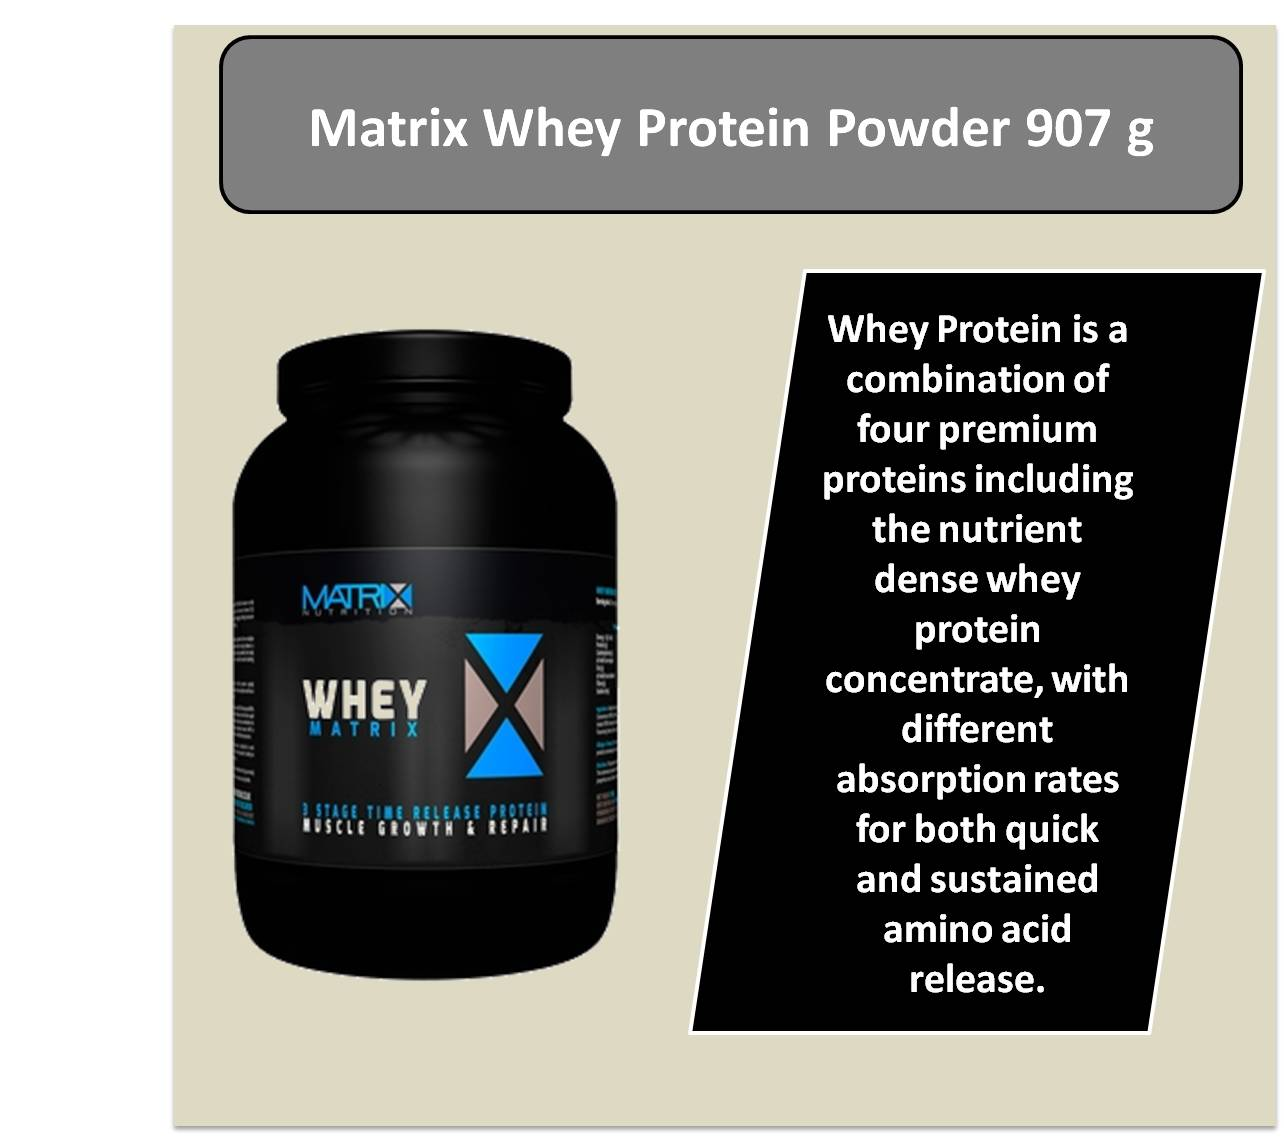 Matrix Whey Protein Powder 907 g